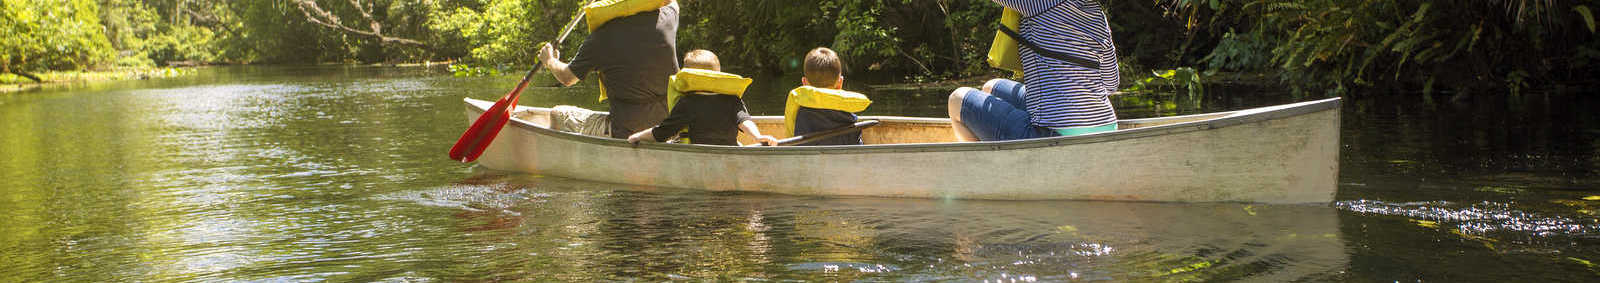 Family canoeing adventure